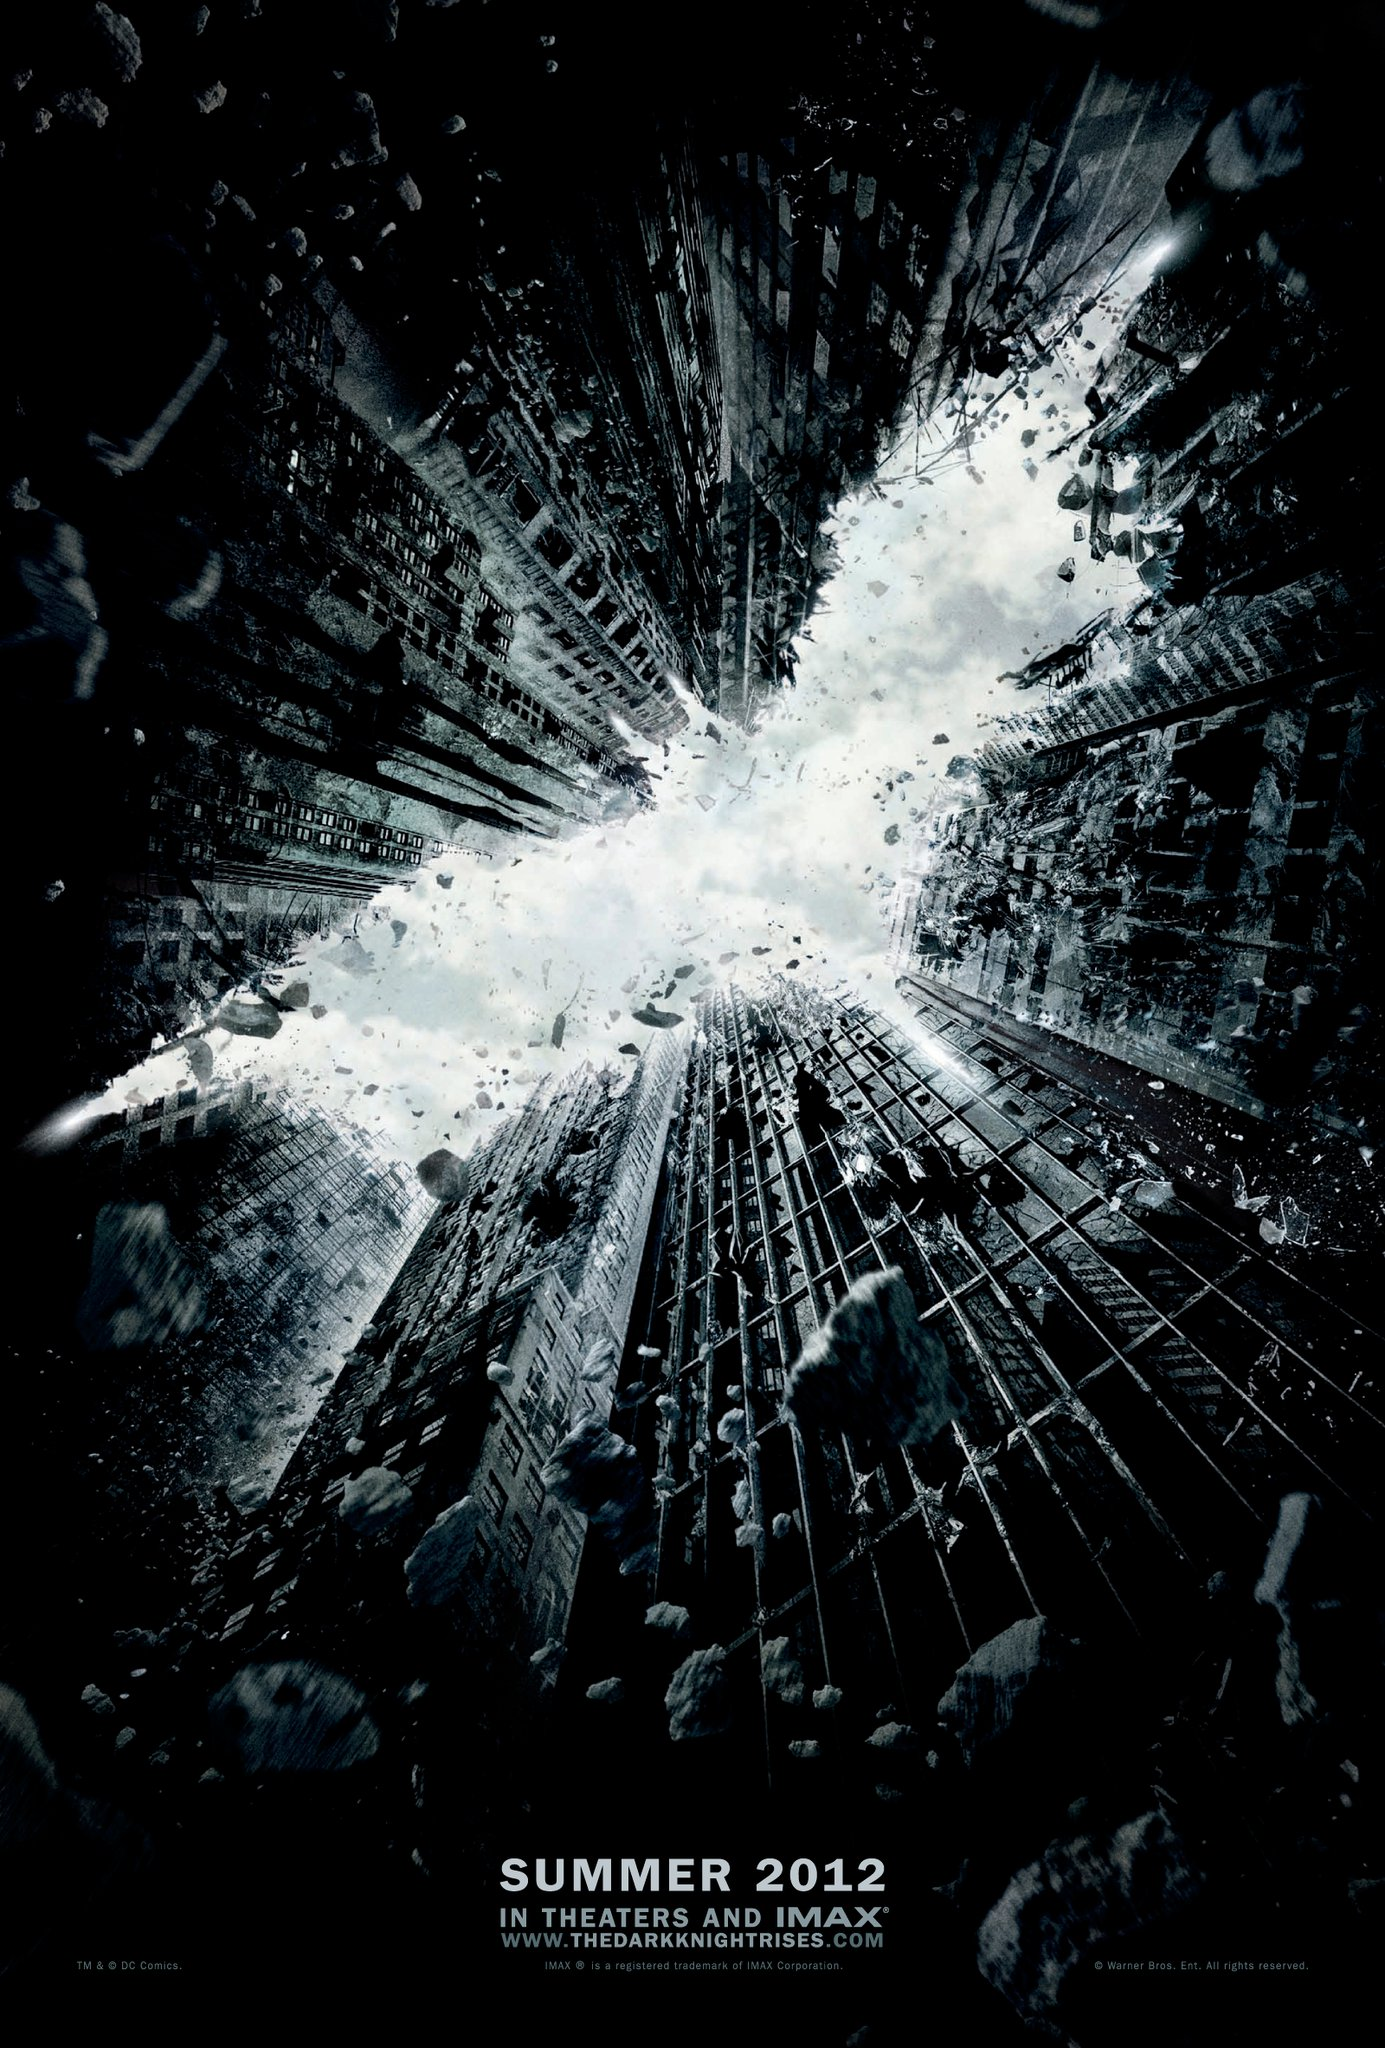 Finally, the OFFICIAL 'The Dark Knight Rises' Teaser Poster has been Released